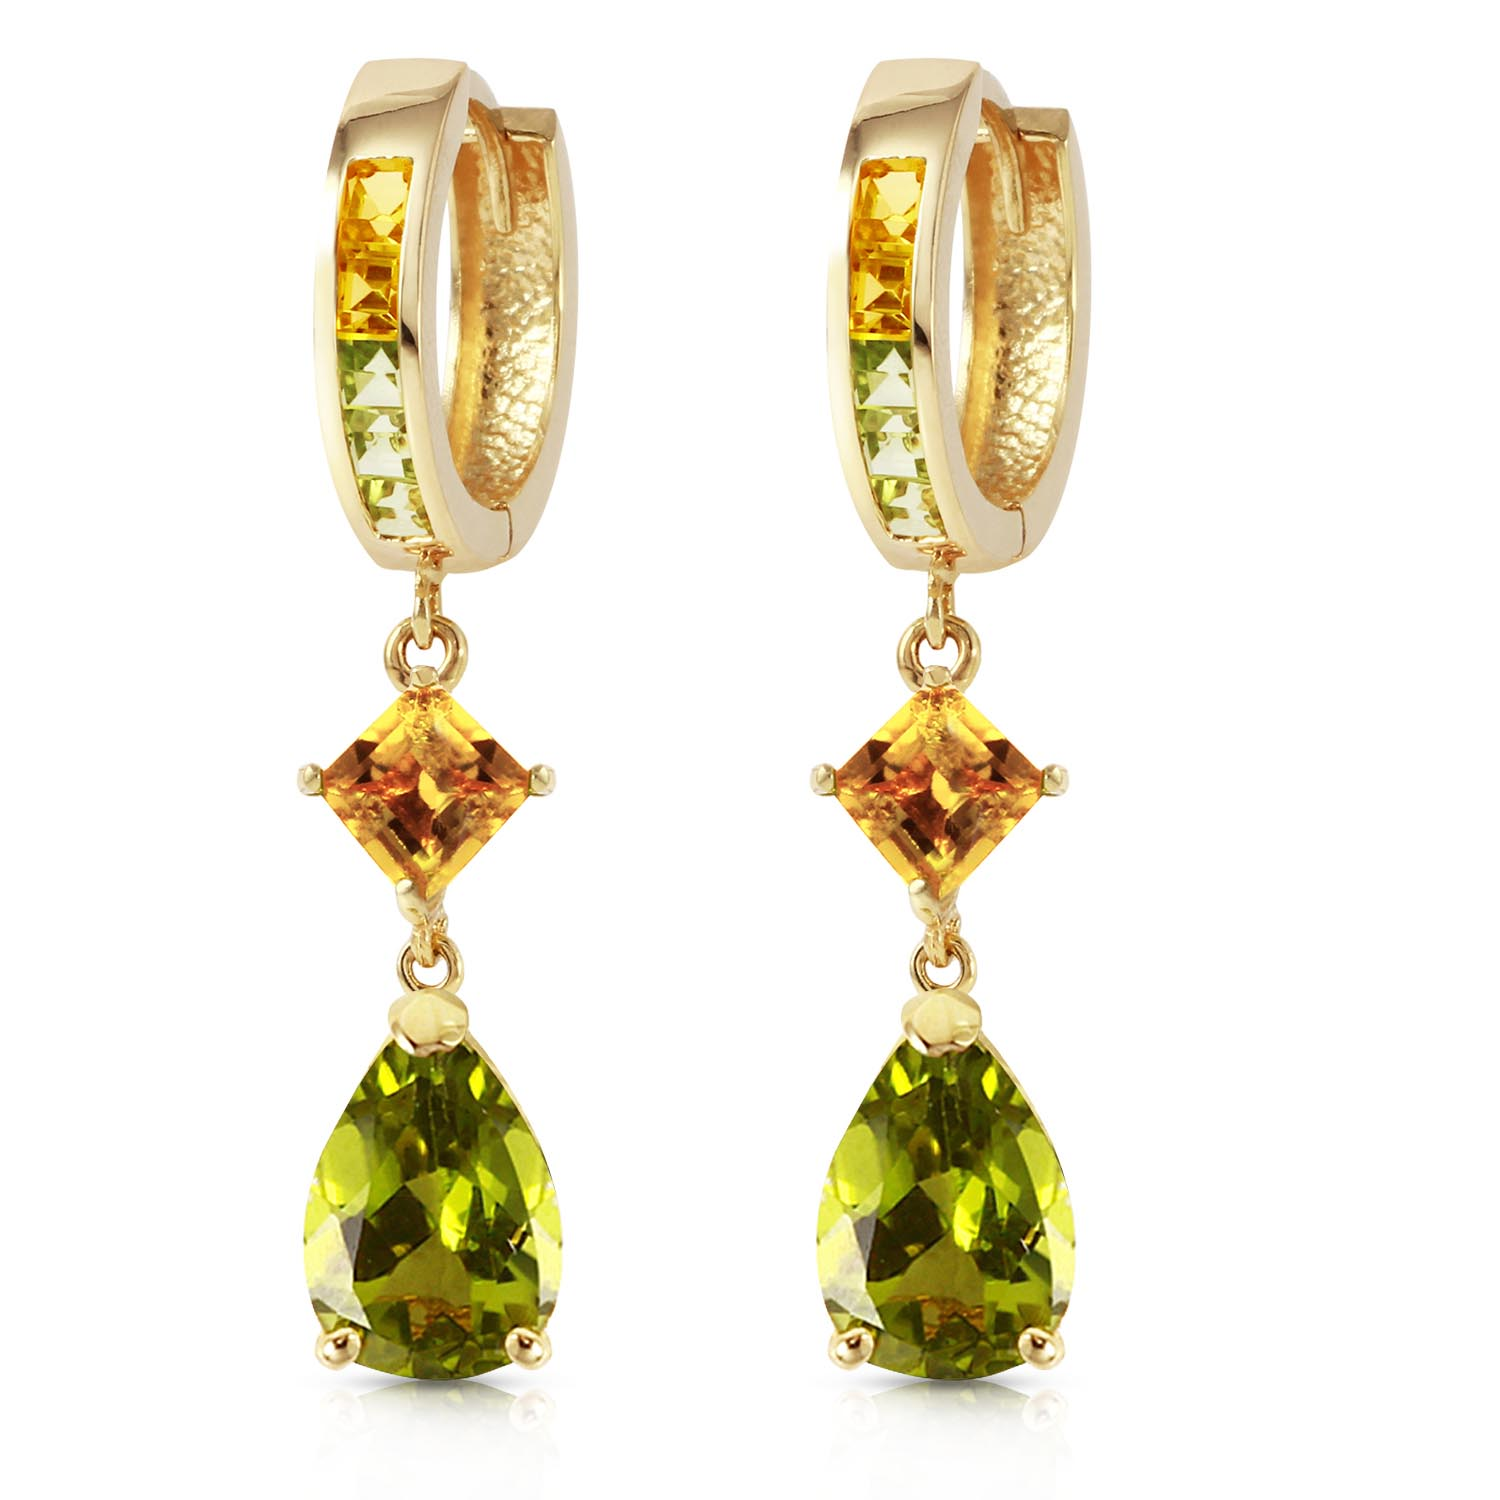 Peridot and Citrine Huggie Earrings 4.9ctw in 9ct Gold